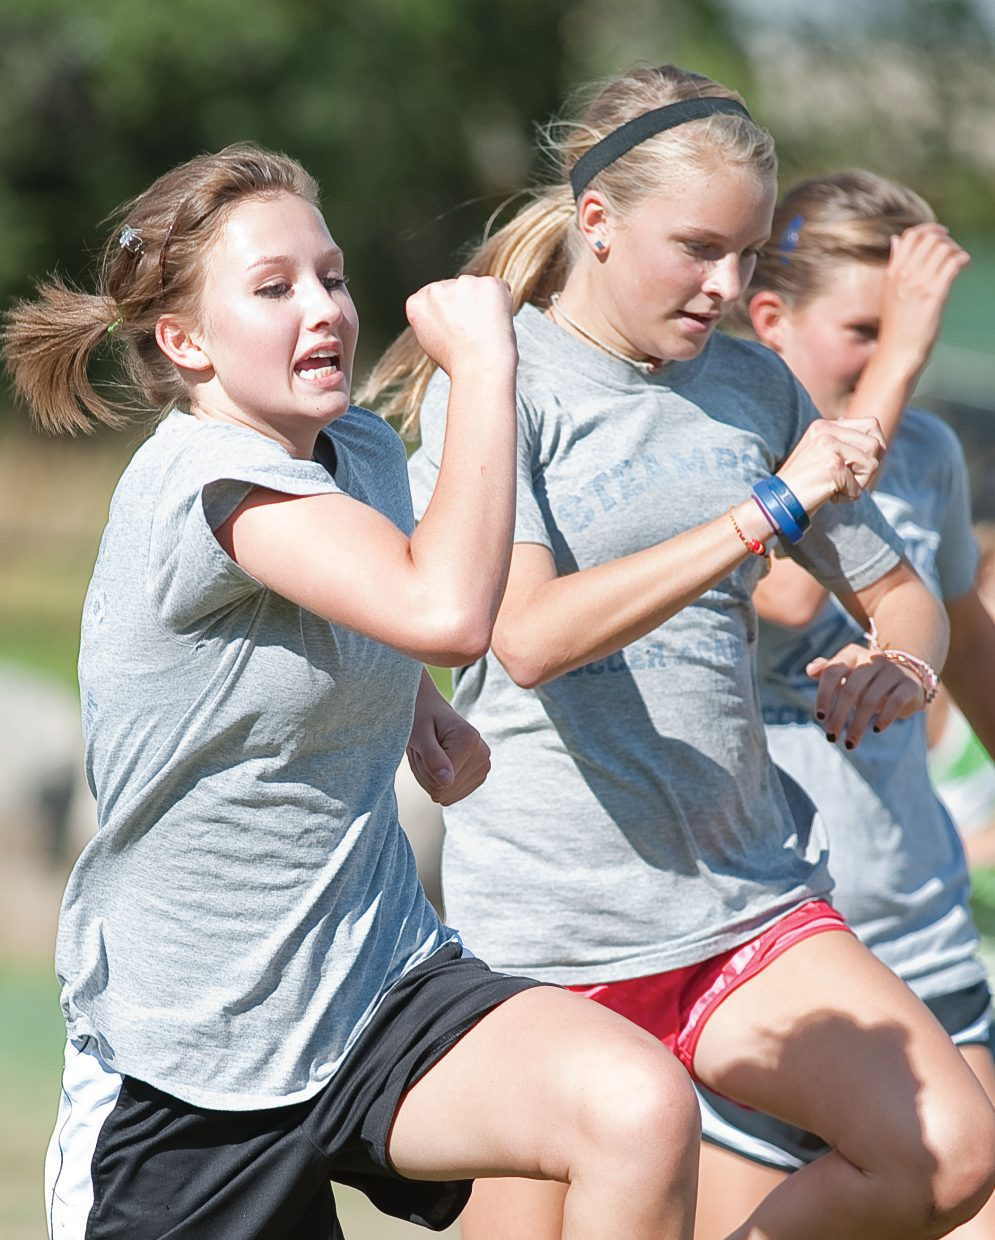 Sophomore Lena Barker warms up with her teammates on the Steamboat Springs High School cross-country team prior to a training run this week at Emerald Park.